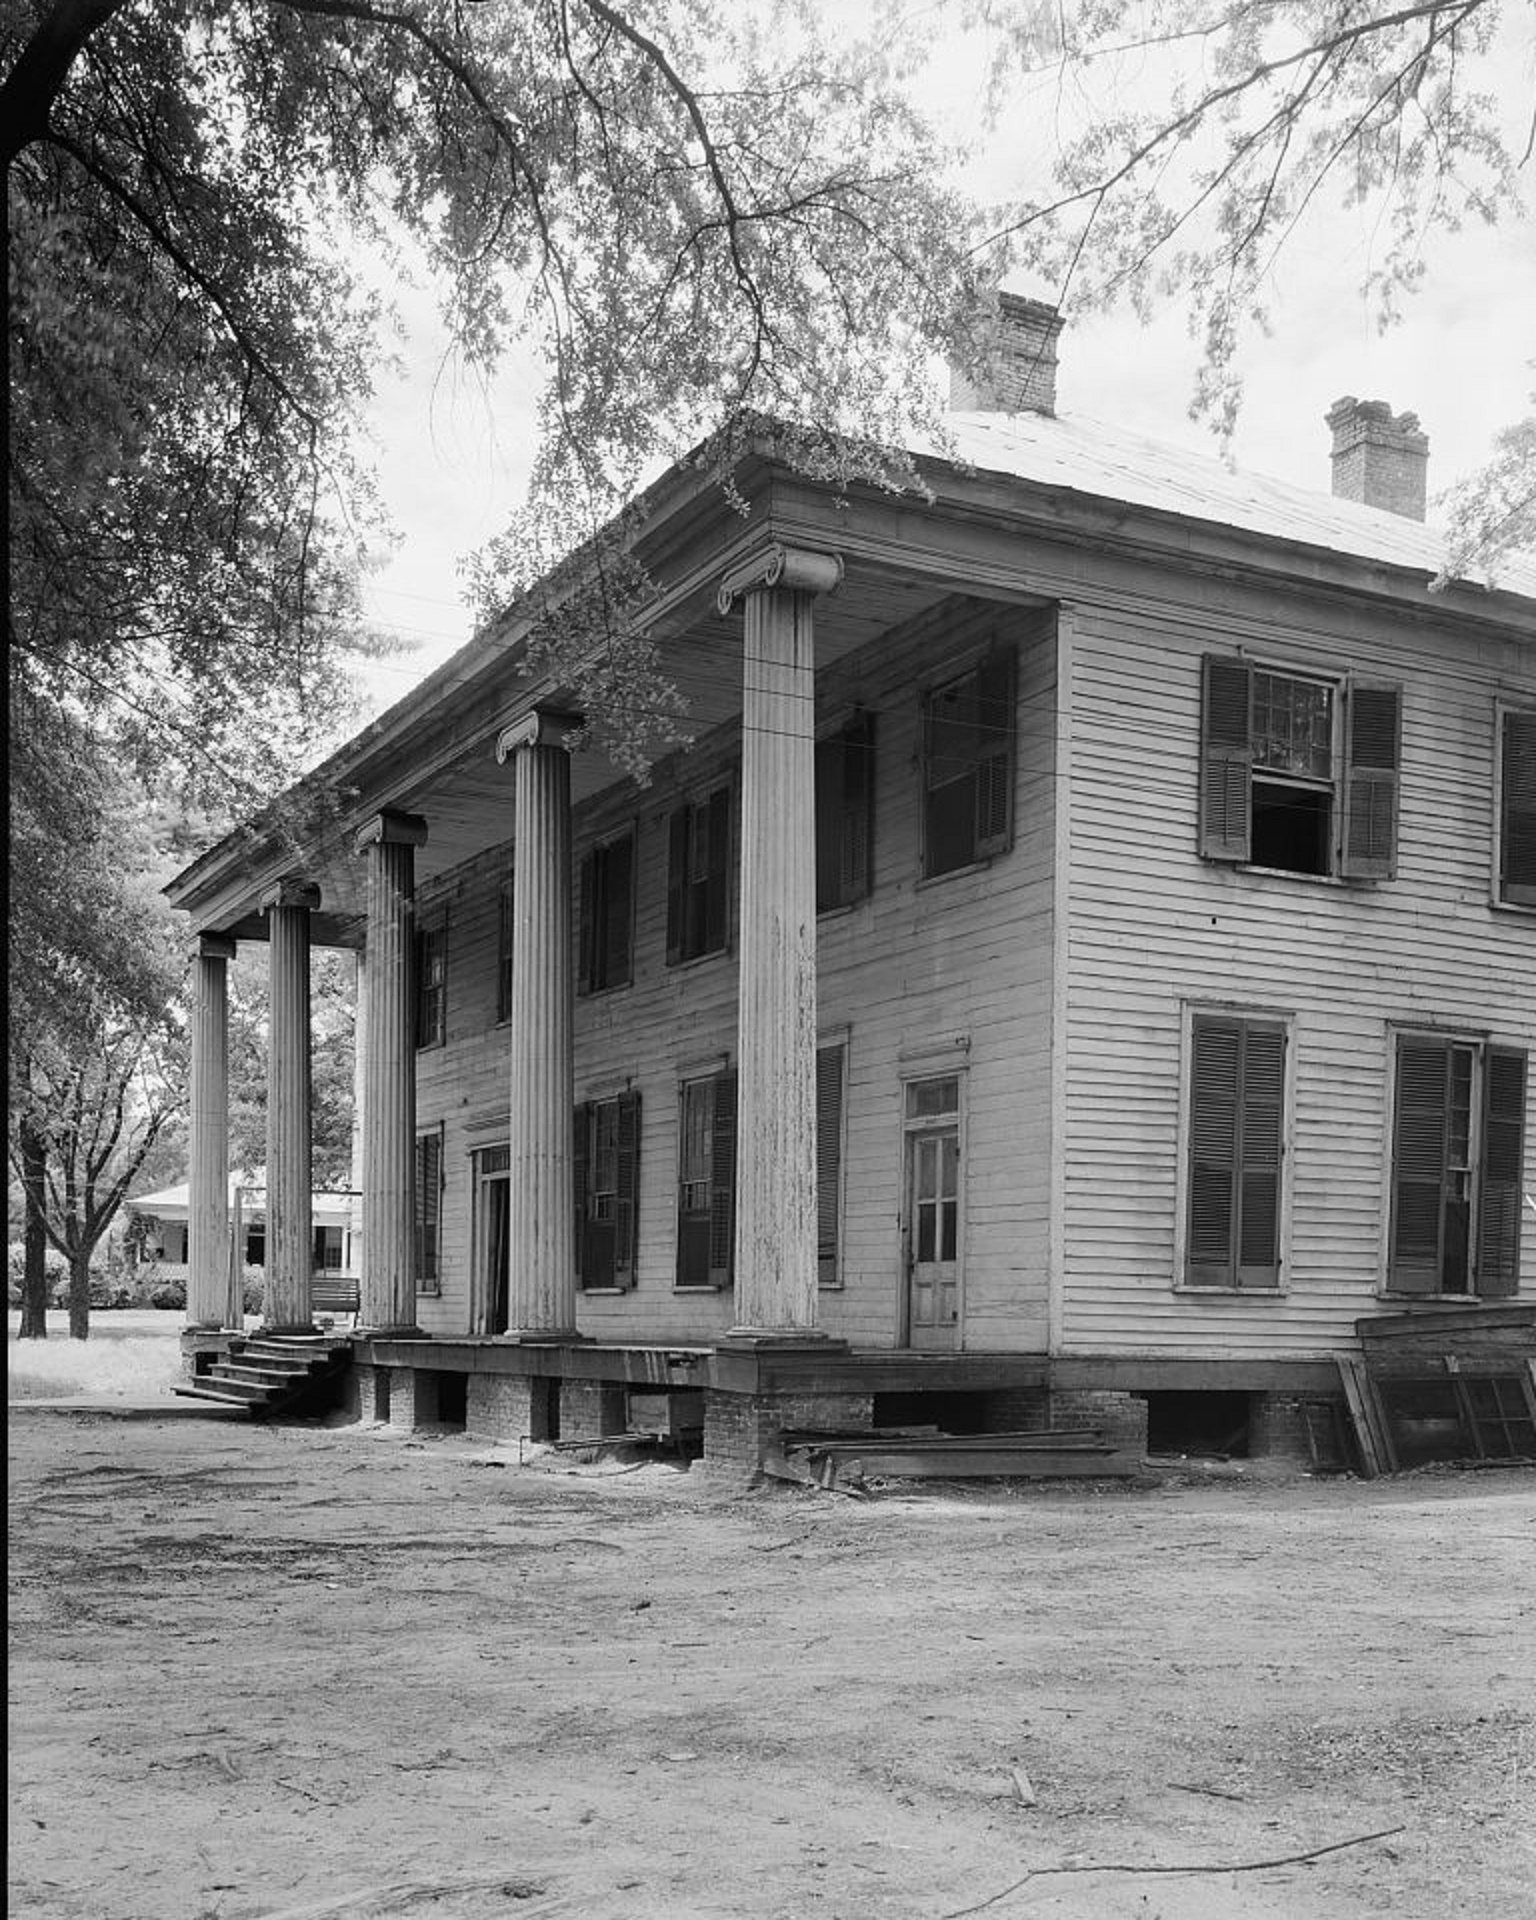 Eutaw Female Academy, also known as the Mesopotamia Female Seminary, Eutaw, Greene County, Alabama 1939 by photographer Frances Benjamin Johnston